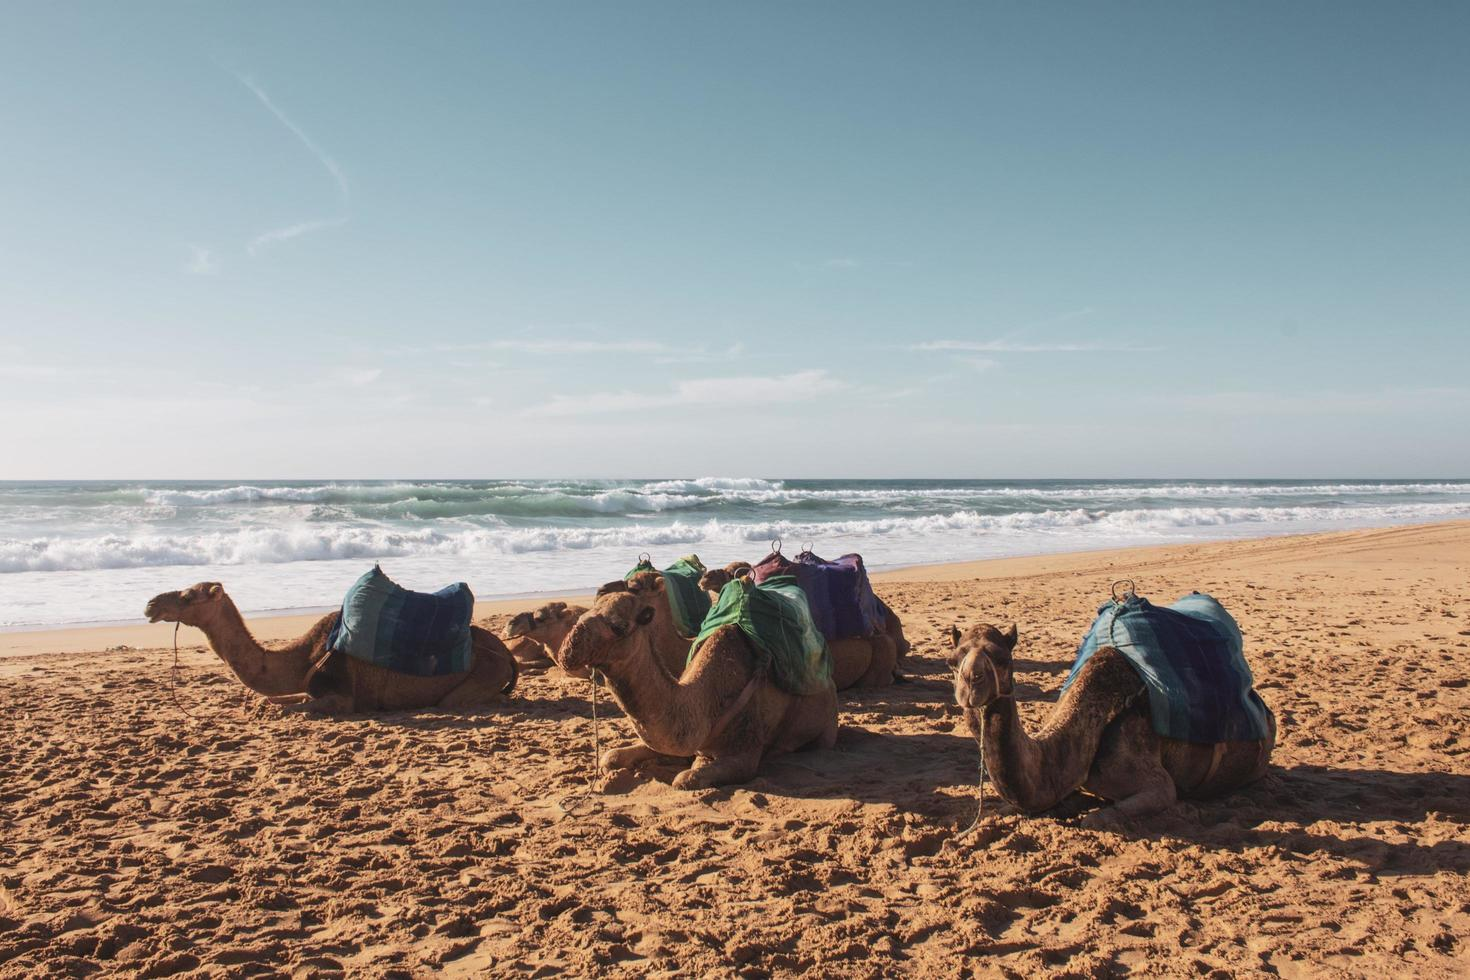 Group of camels on beach photo